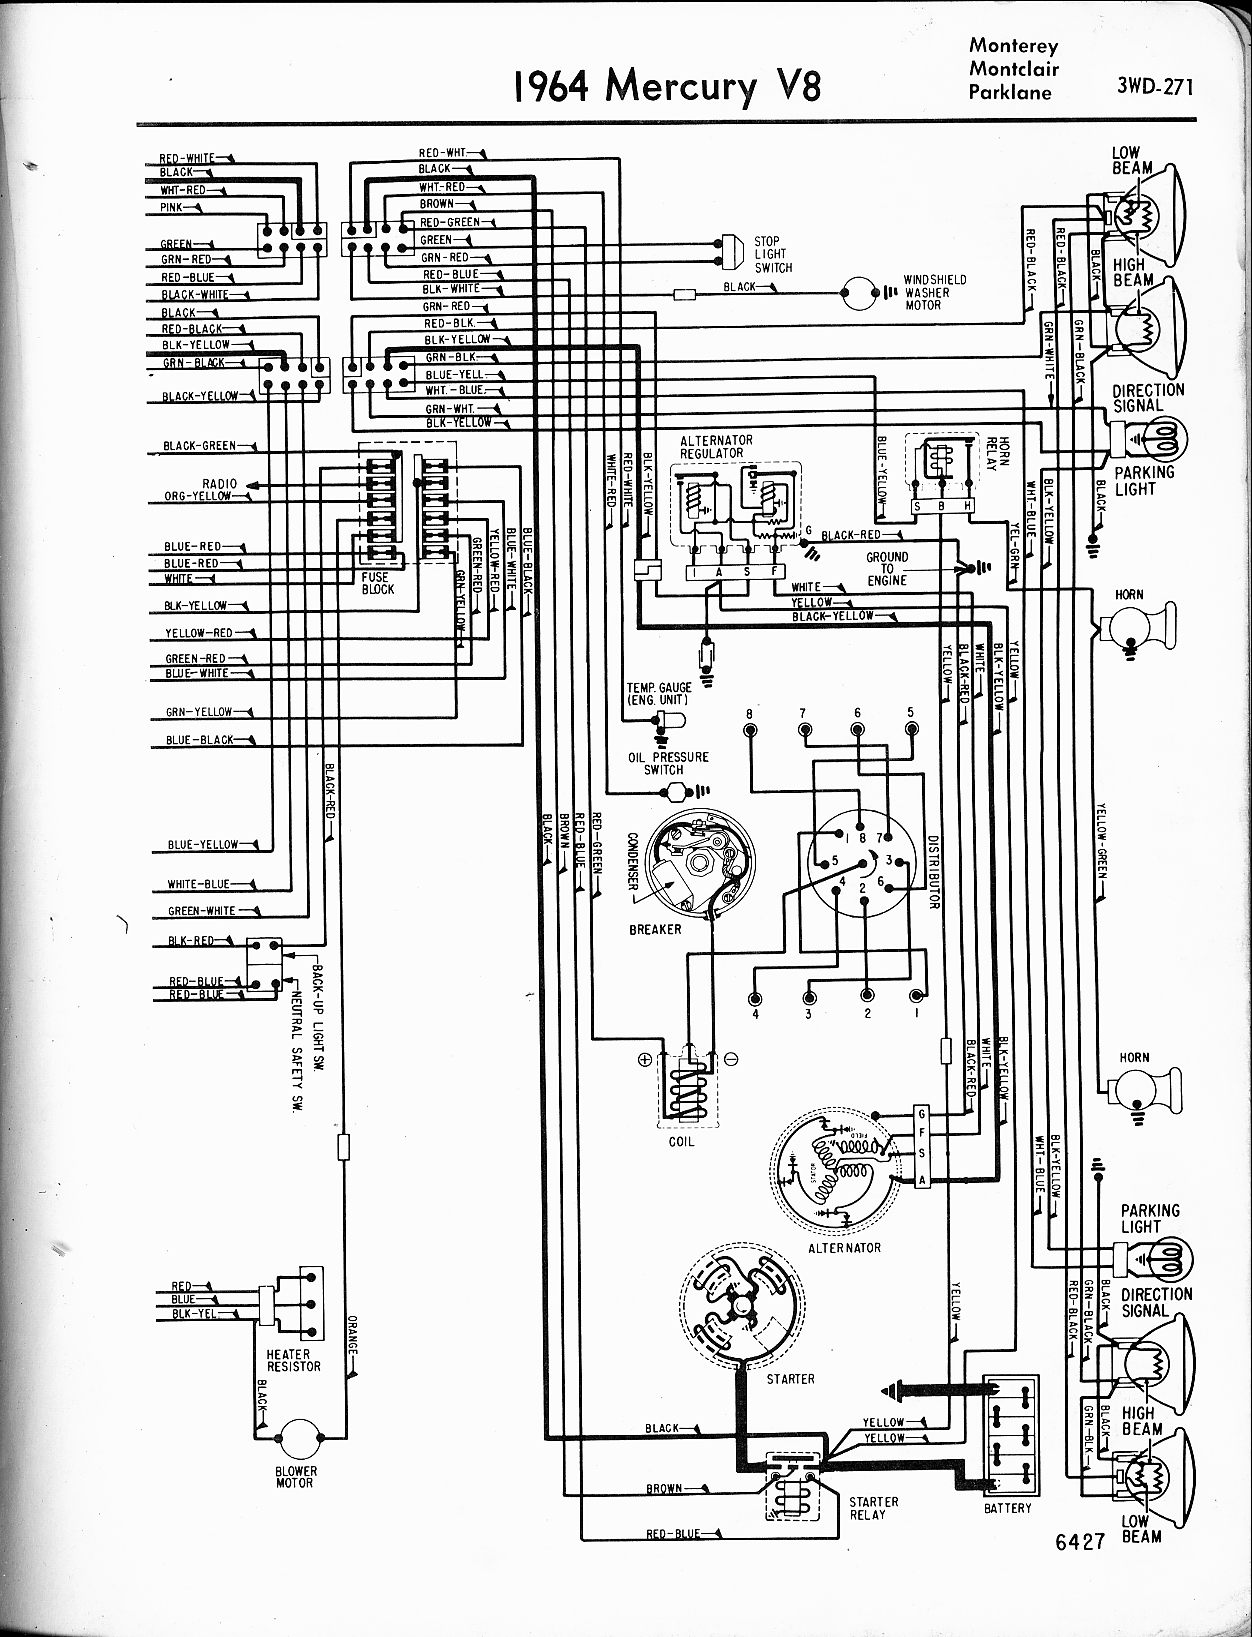 375980268868491222 in addition Regulator as well 3e2jc Wiring Skematics Dash 1992 Cadillac Sts further 1964 Lincoln Continental Fuse Box besides 1997 Dodge Ram Evap System Diagram Html. on 1957 cadillac wiring diagram